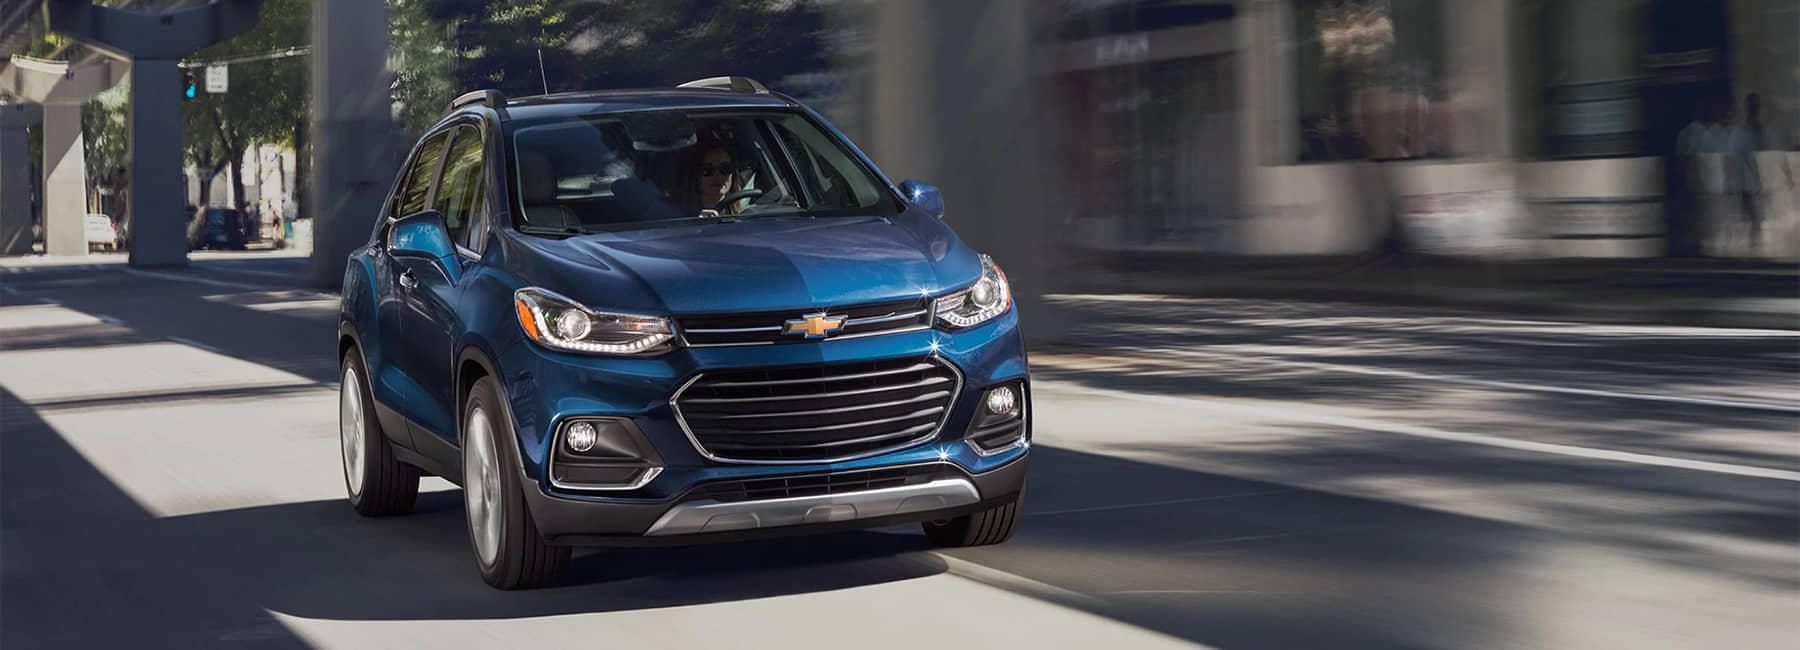 2020 Chevy Trax Compact SUV Dual Port Grille